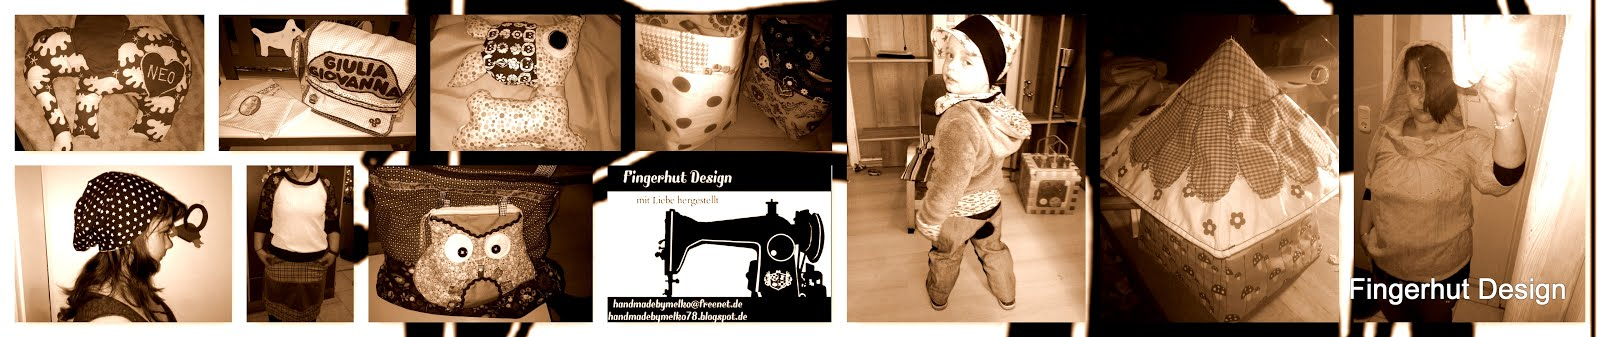 Fingerhut Design